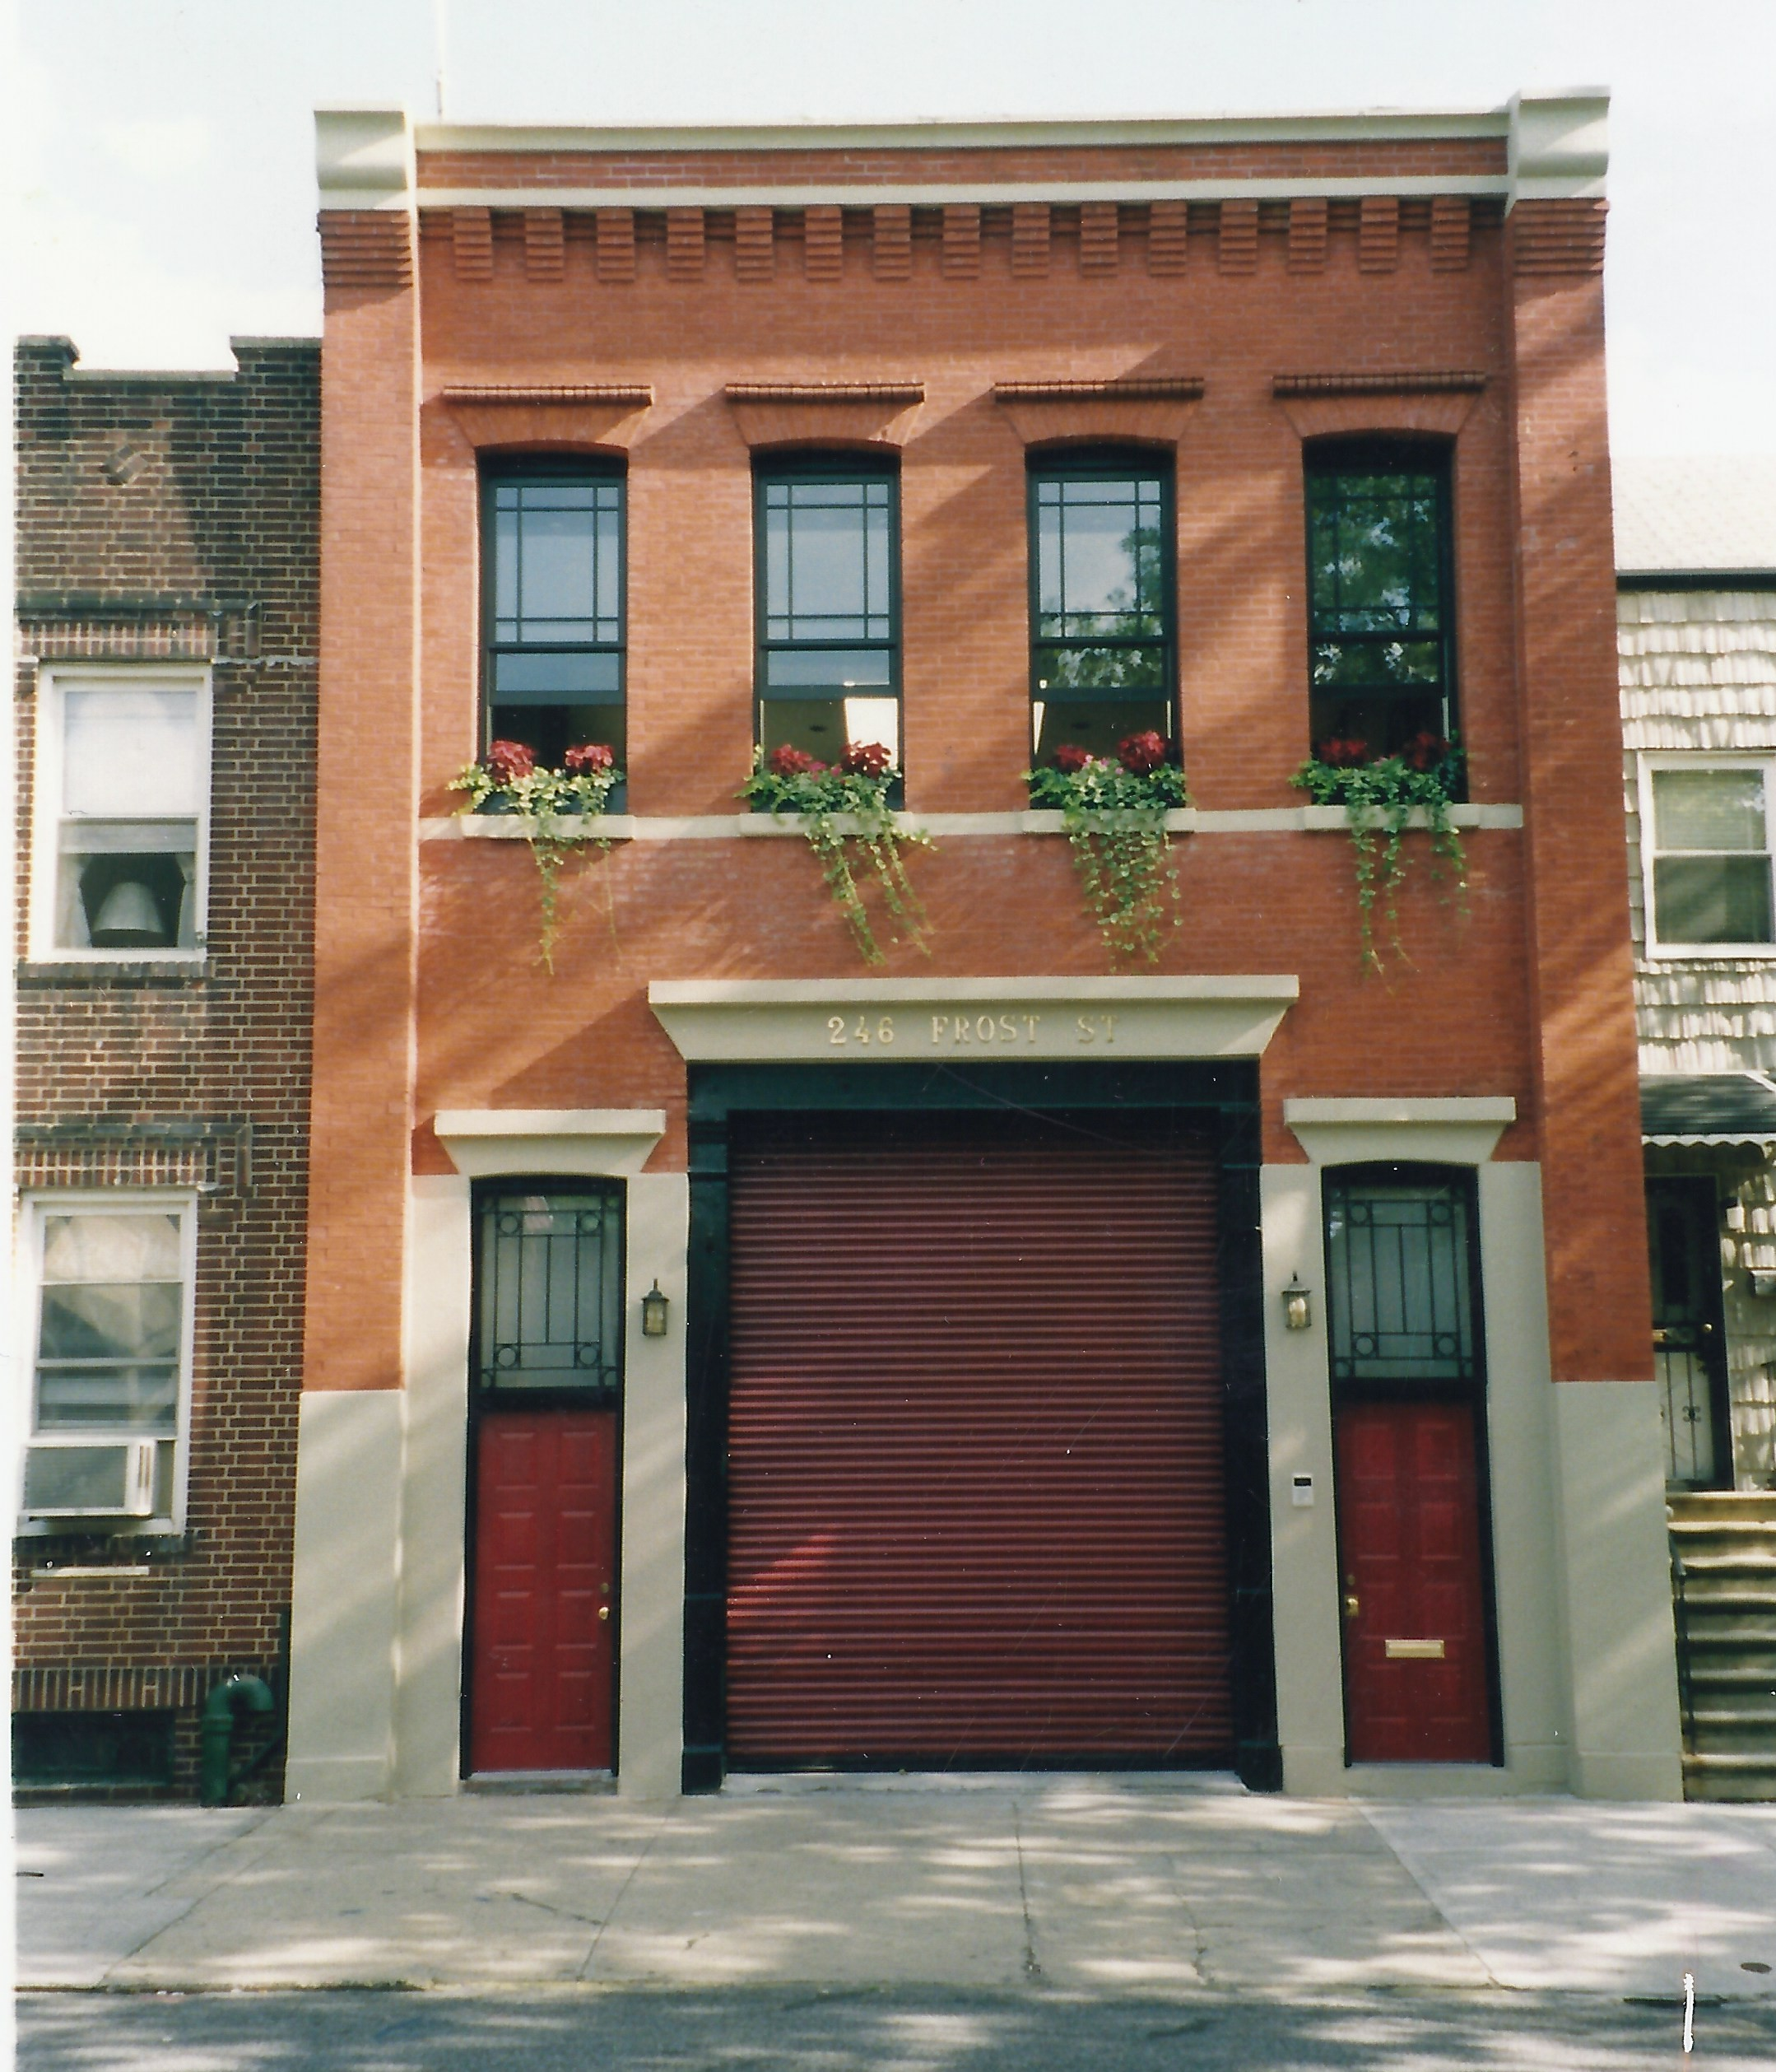 246 Frost Street, Williamsburg, firehouse,